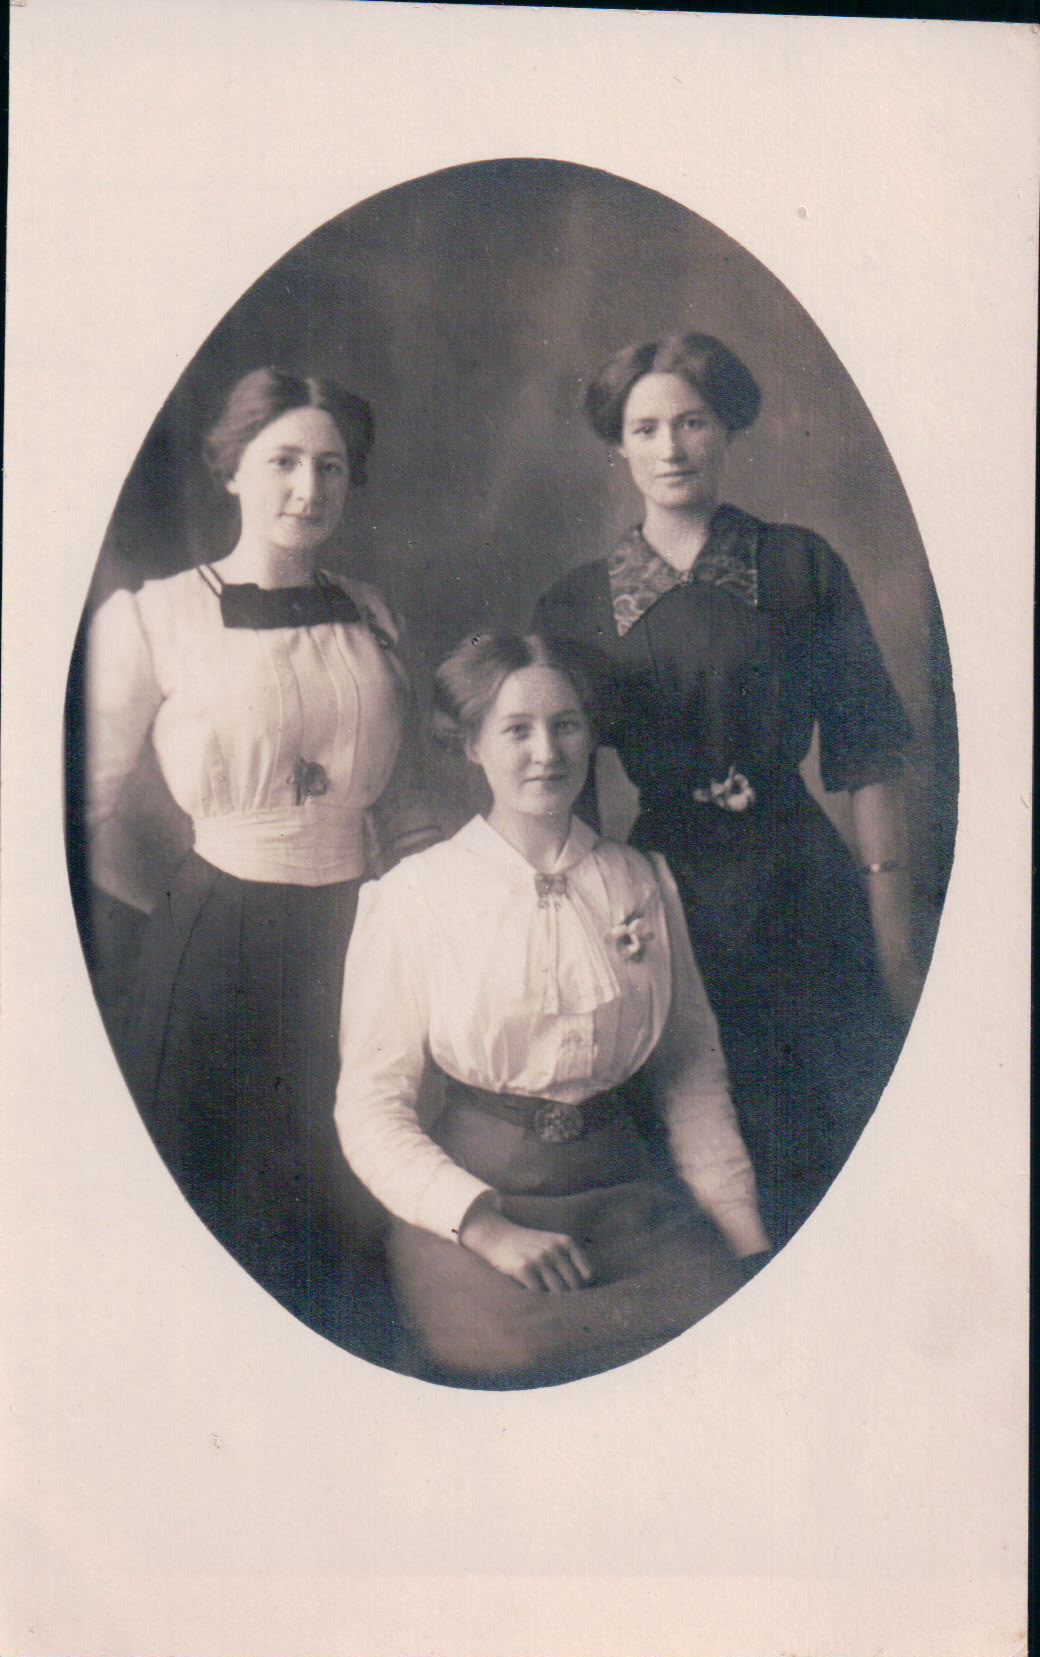 Tragically unlabeled! Is this Anna and her two sisters? Charles' three sisters? Will we ever know?